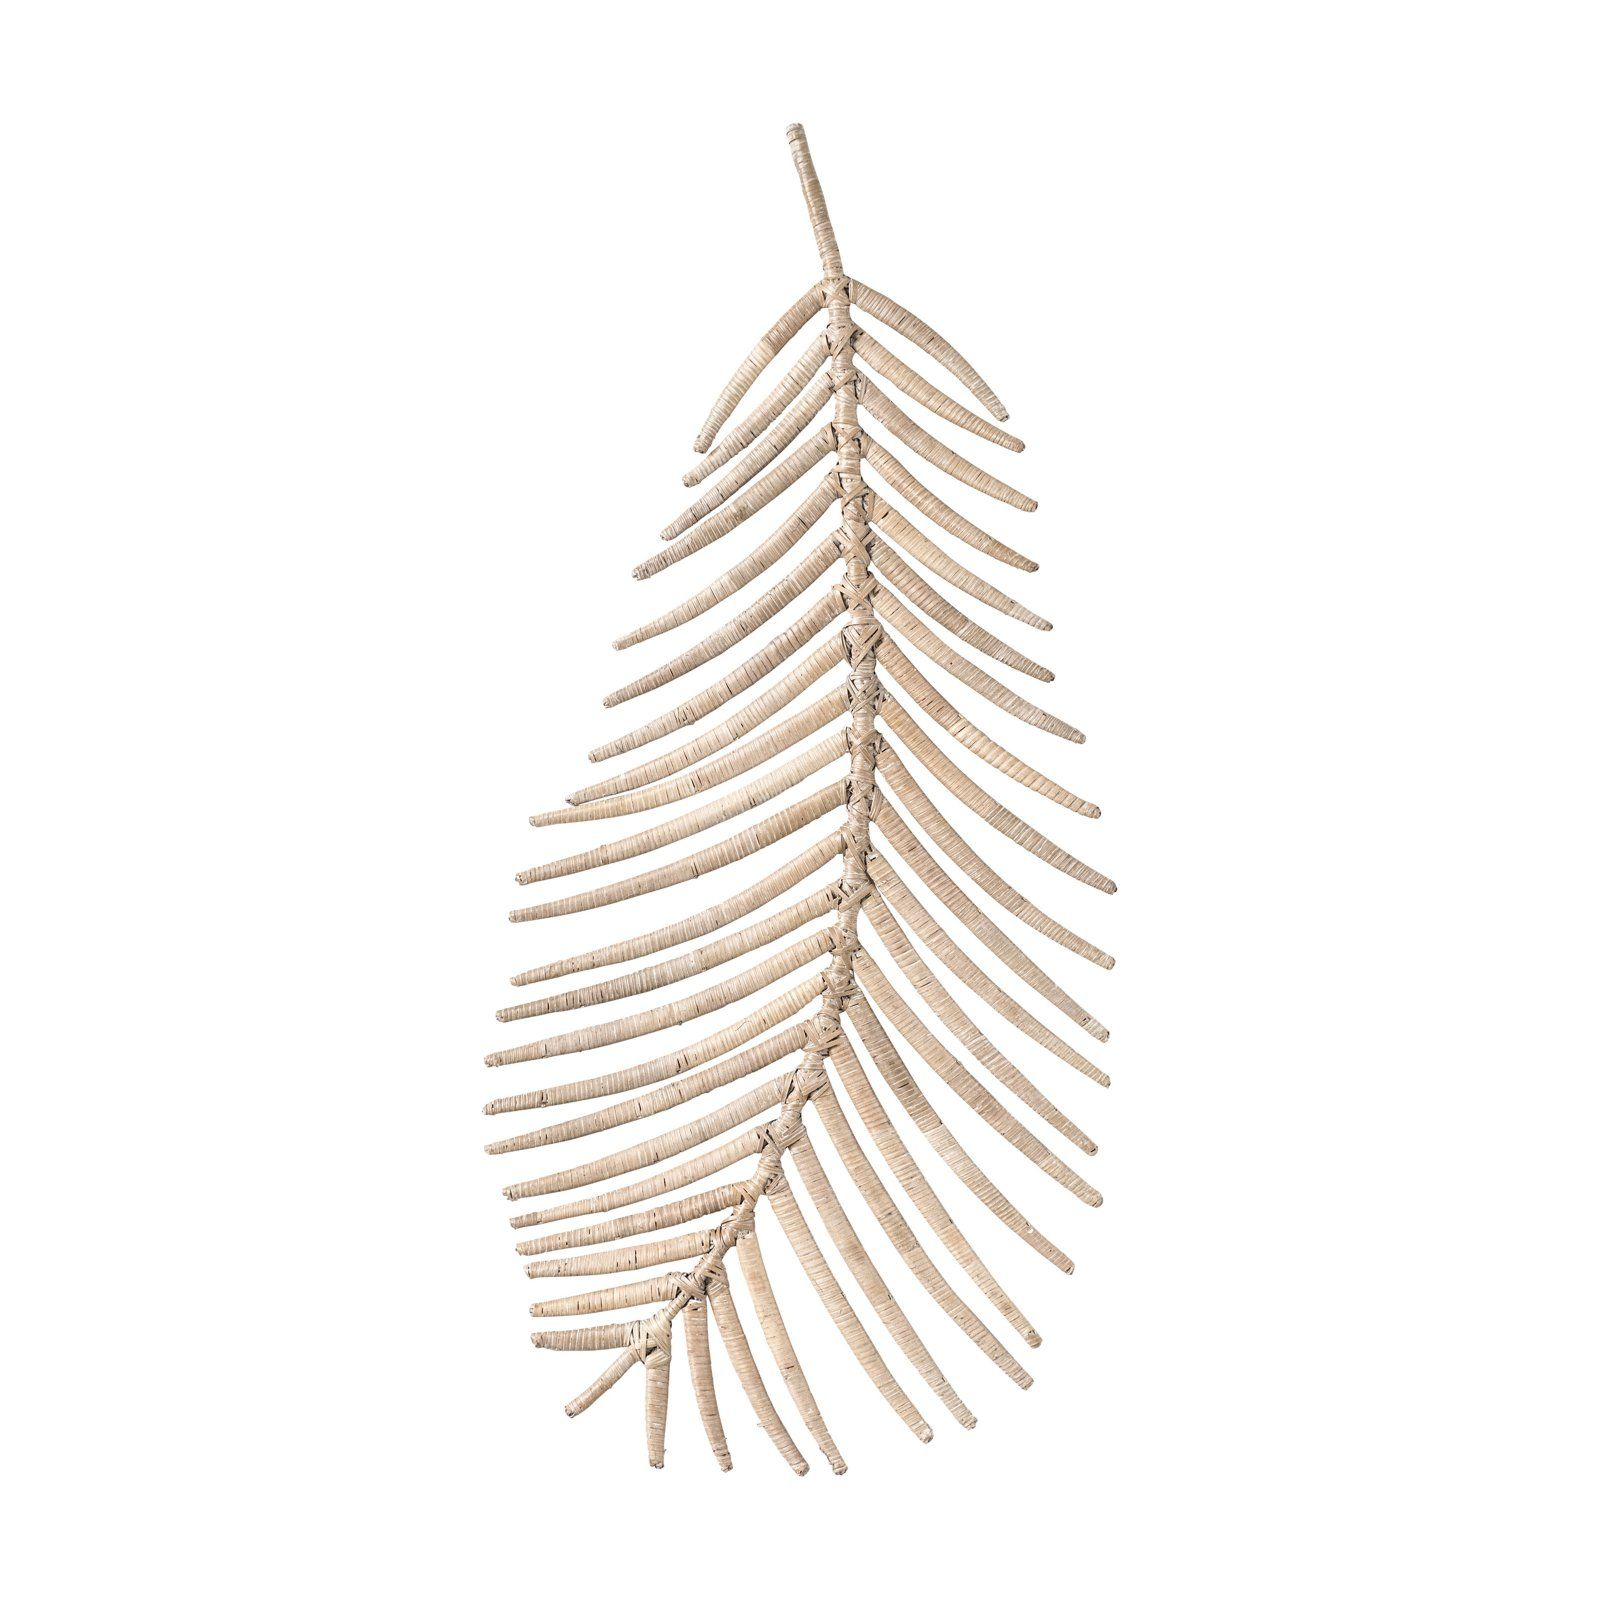 Beige Rattan Palm Leaf Wall Accent By Sprinkle Bloom Walmart Com Rattan Palm Accent Wall Wall Accents Decor